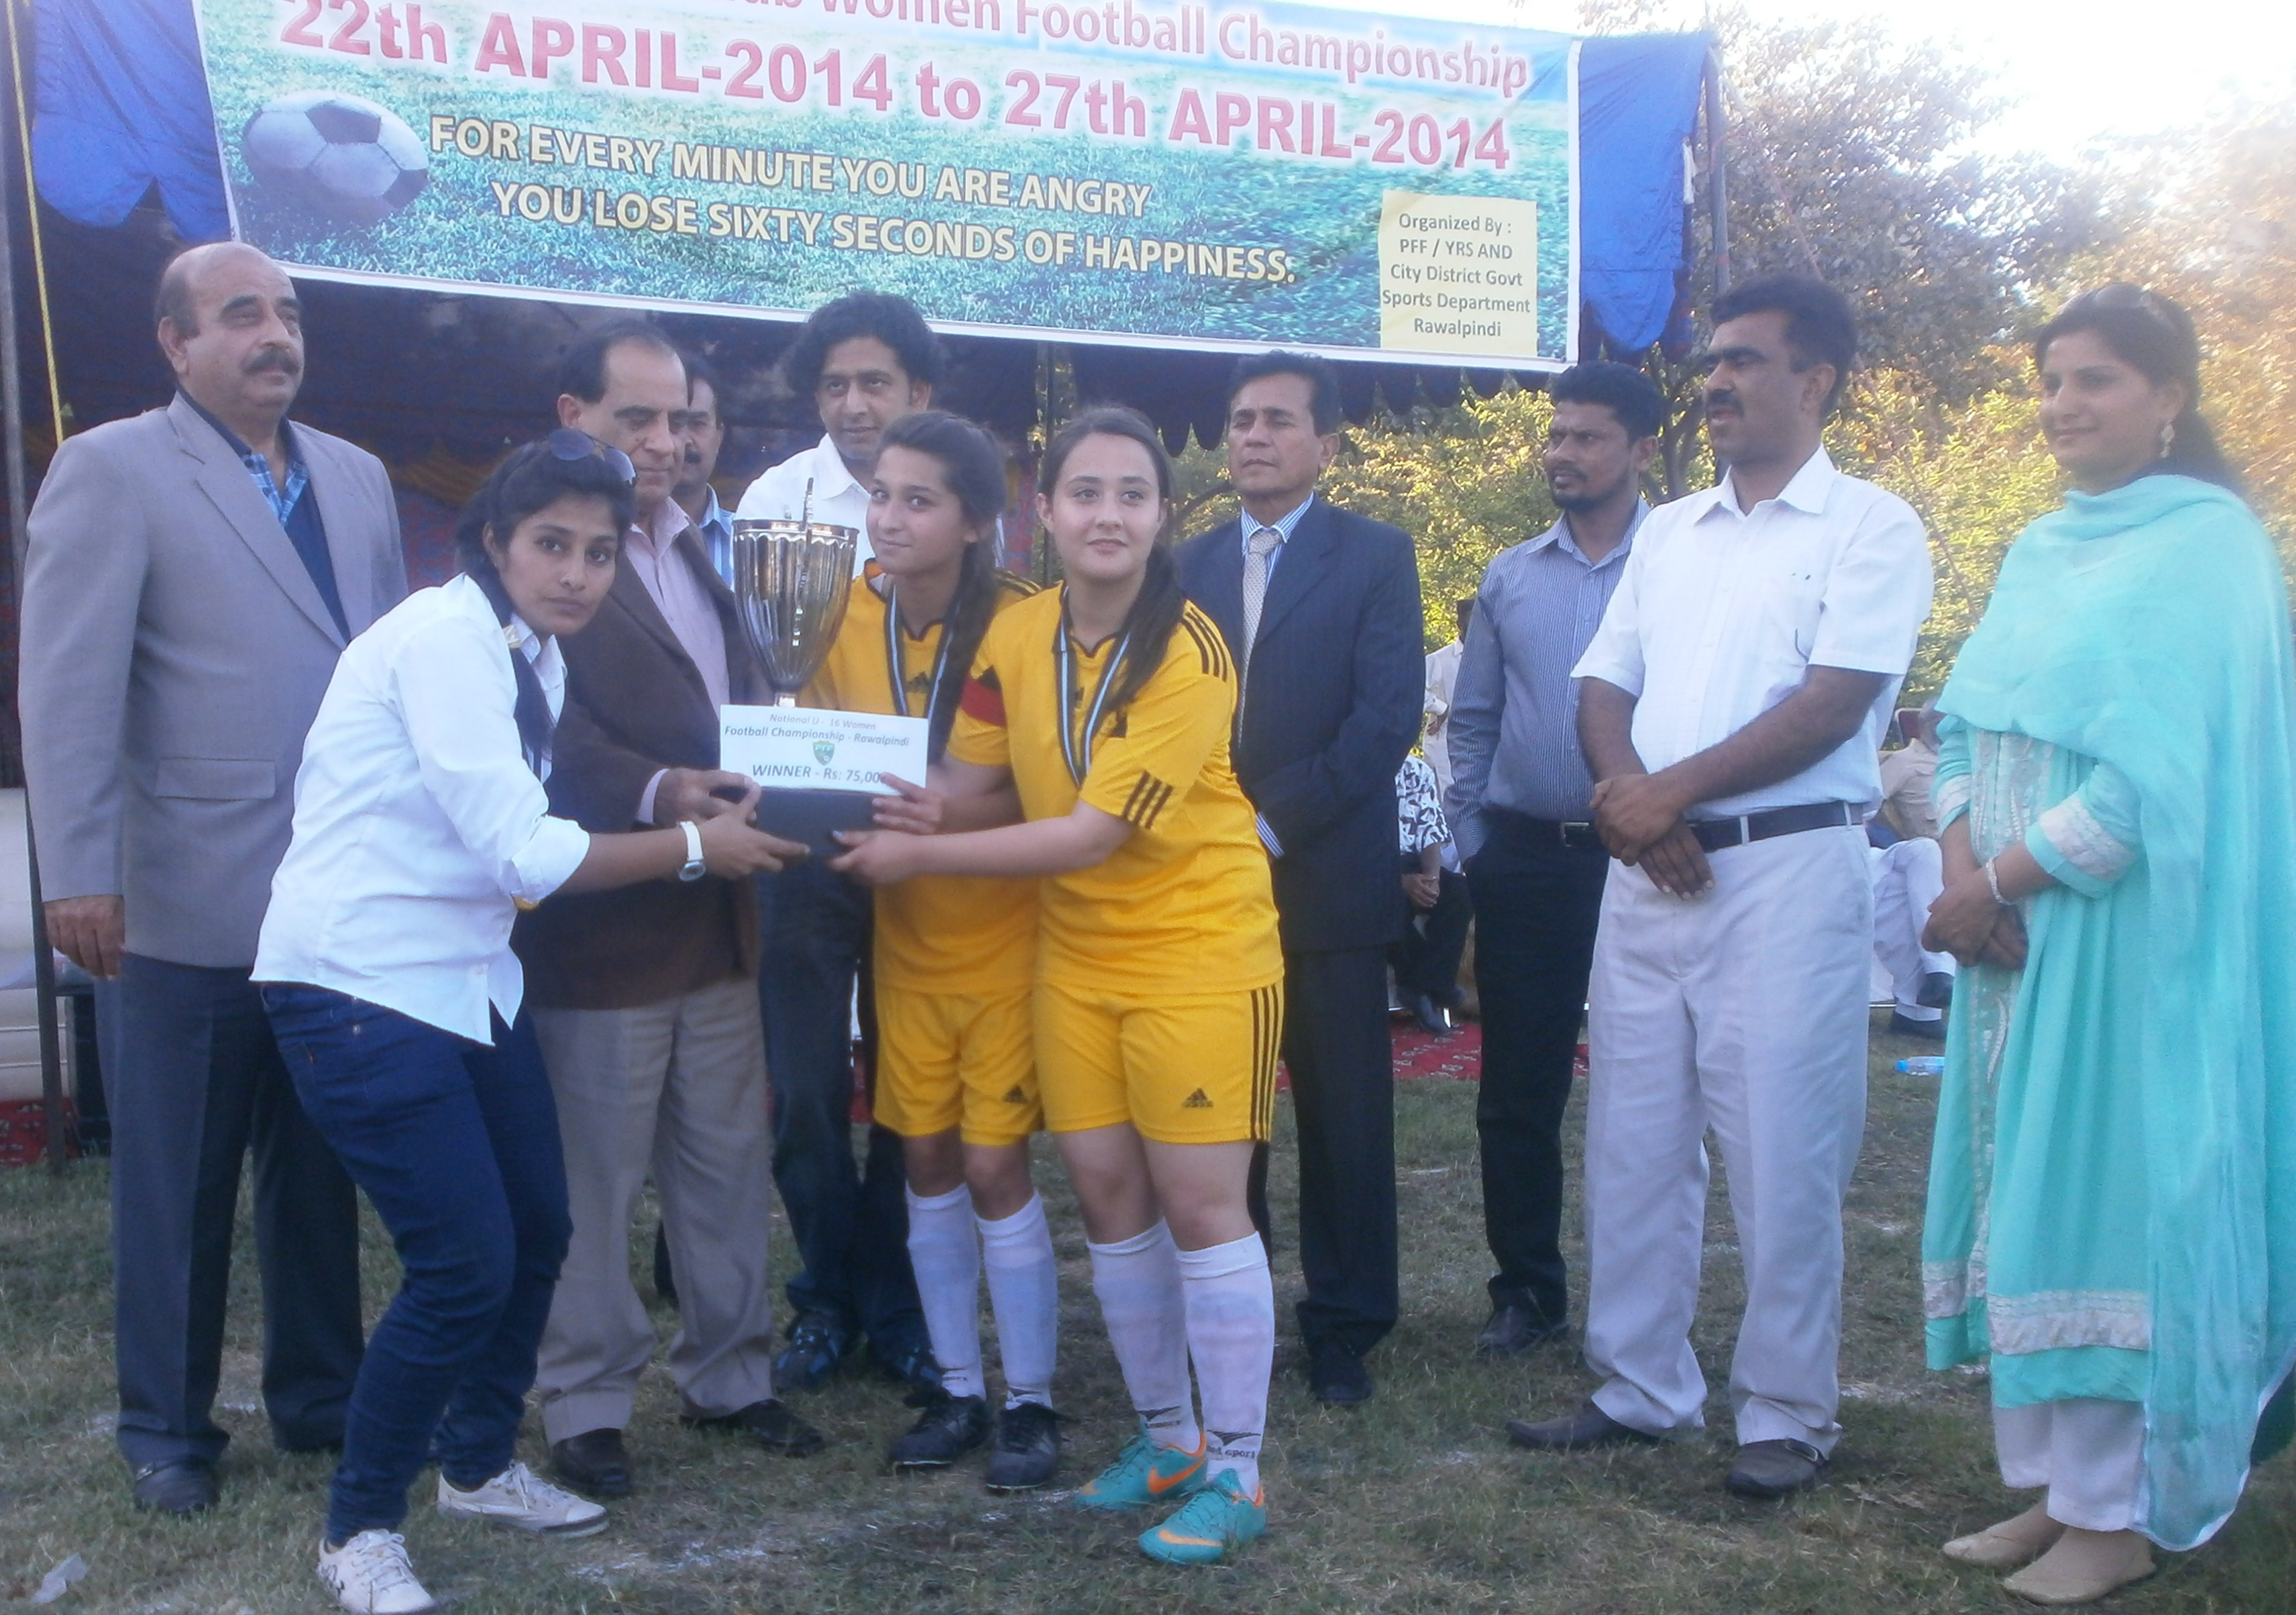 Young Rising Star crowned National Women's U-16 Championship winners